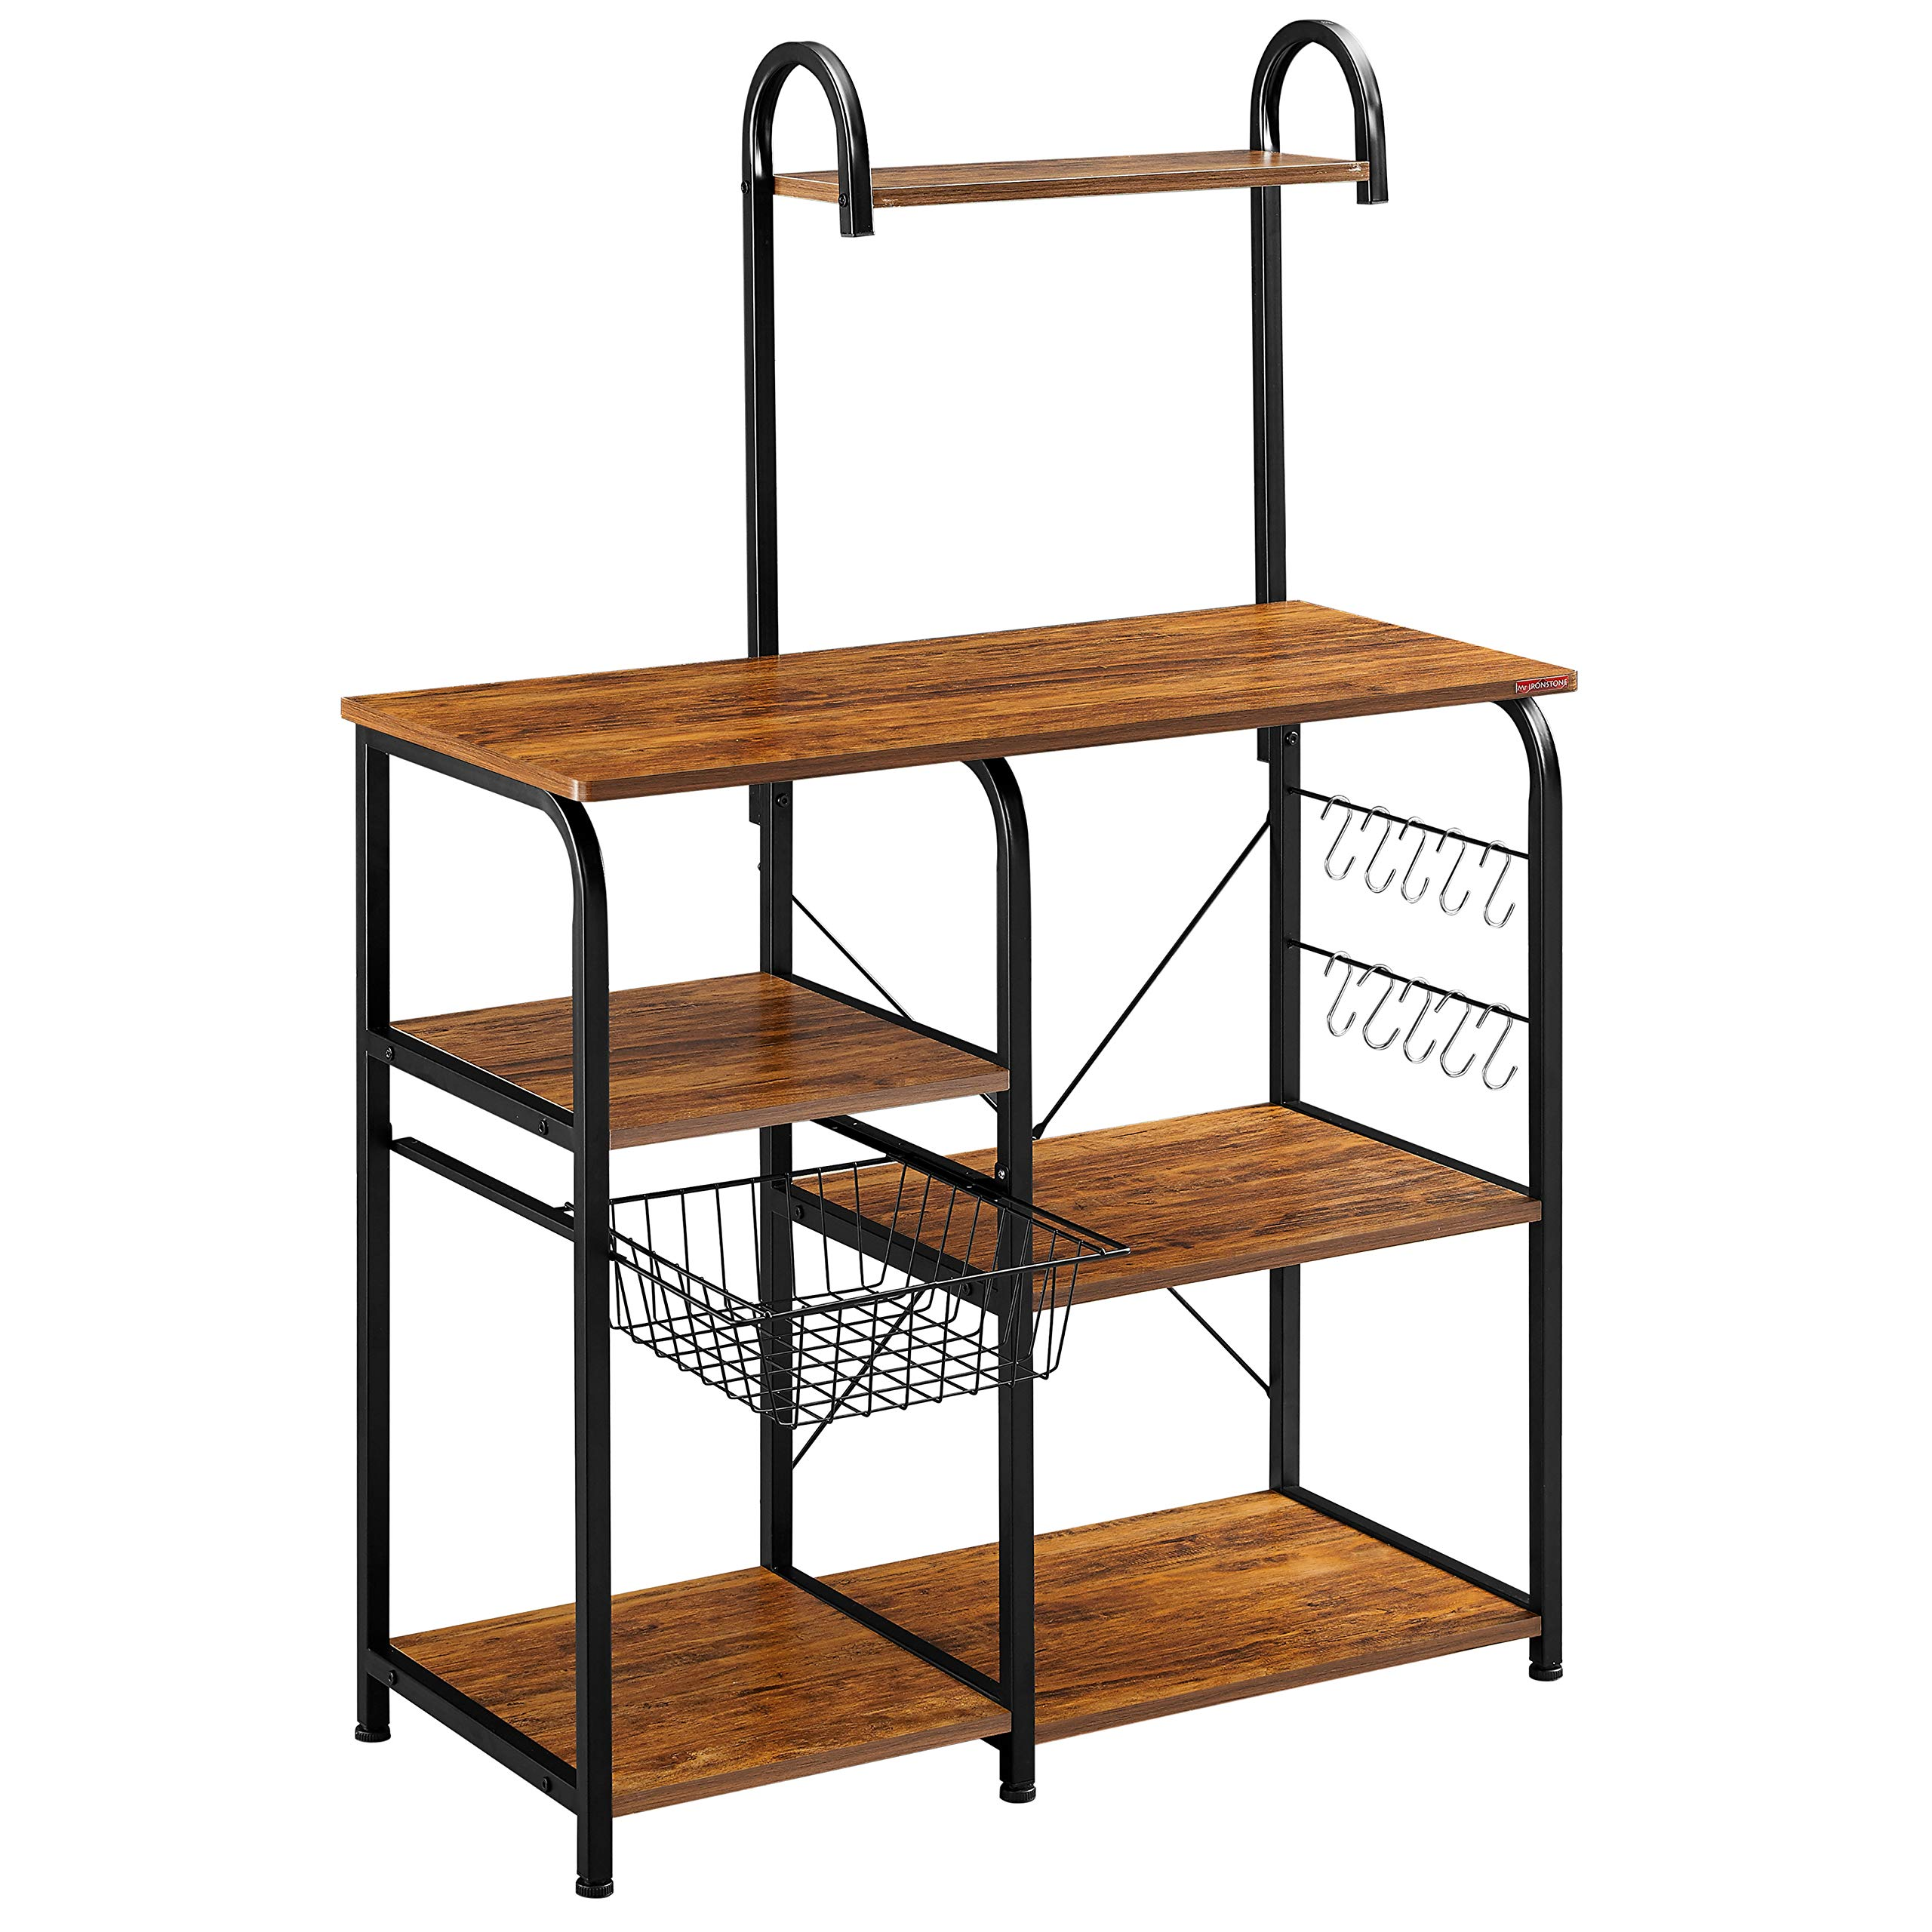 Mr IRONSTONE Vintage Kitchen Baker's Rack Utility Storage Shelf 35.5'' Microwave Stand 4-Tier+3-Tier Shelf for Spice Rack Organizer Workstation with 10 Hooks